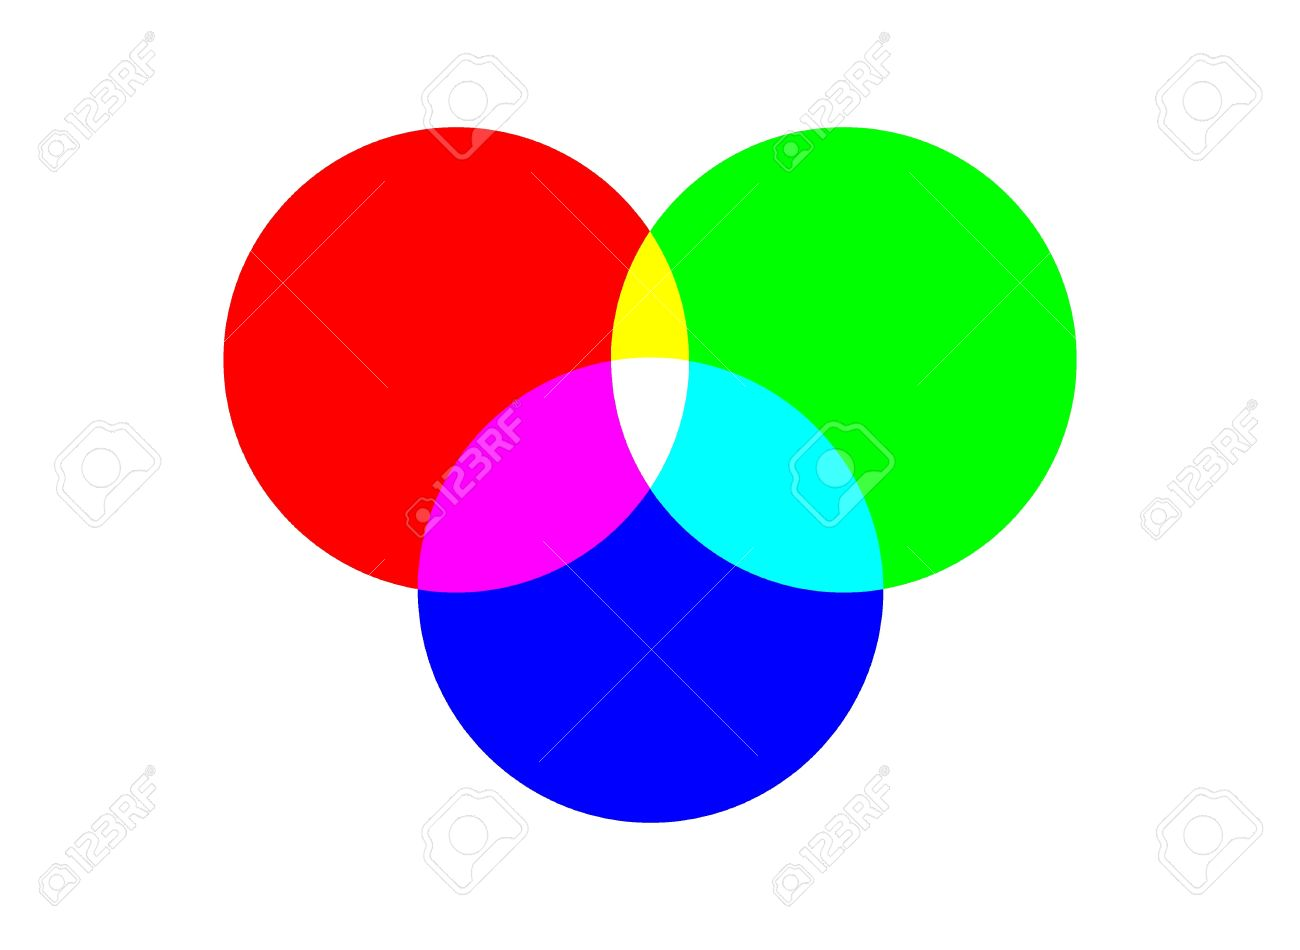 Rgb color chart stock photo picture and royalty free image image rgb color chart stock photo 7148688 nvjuhfo Image collections